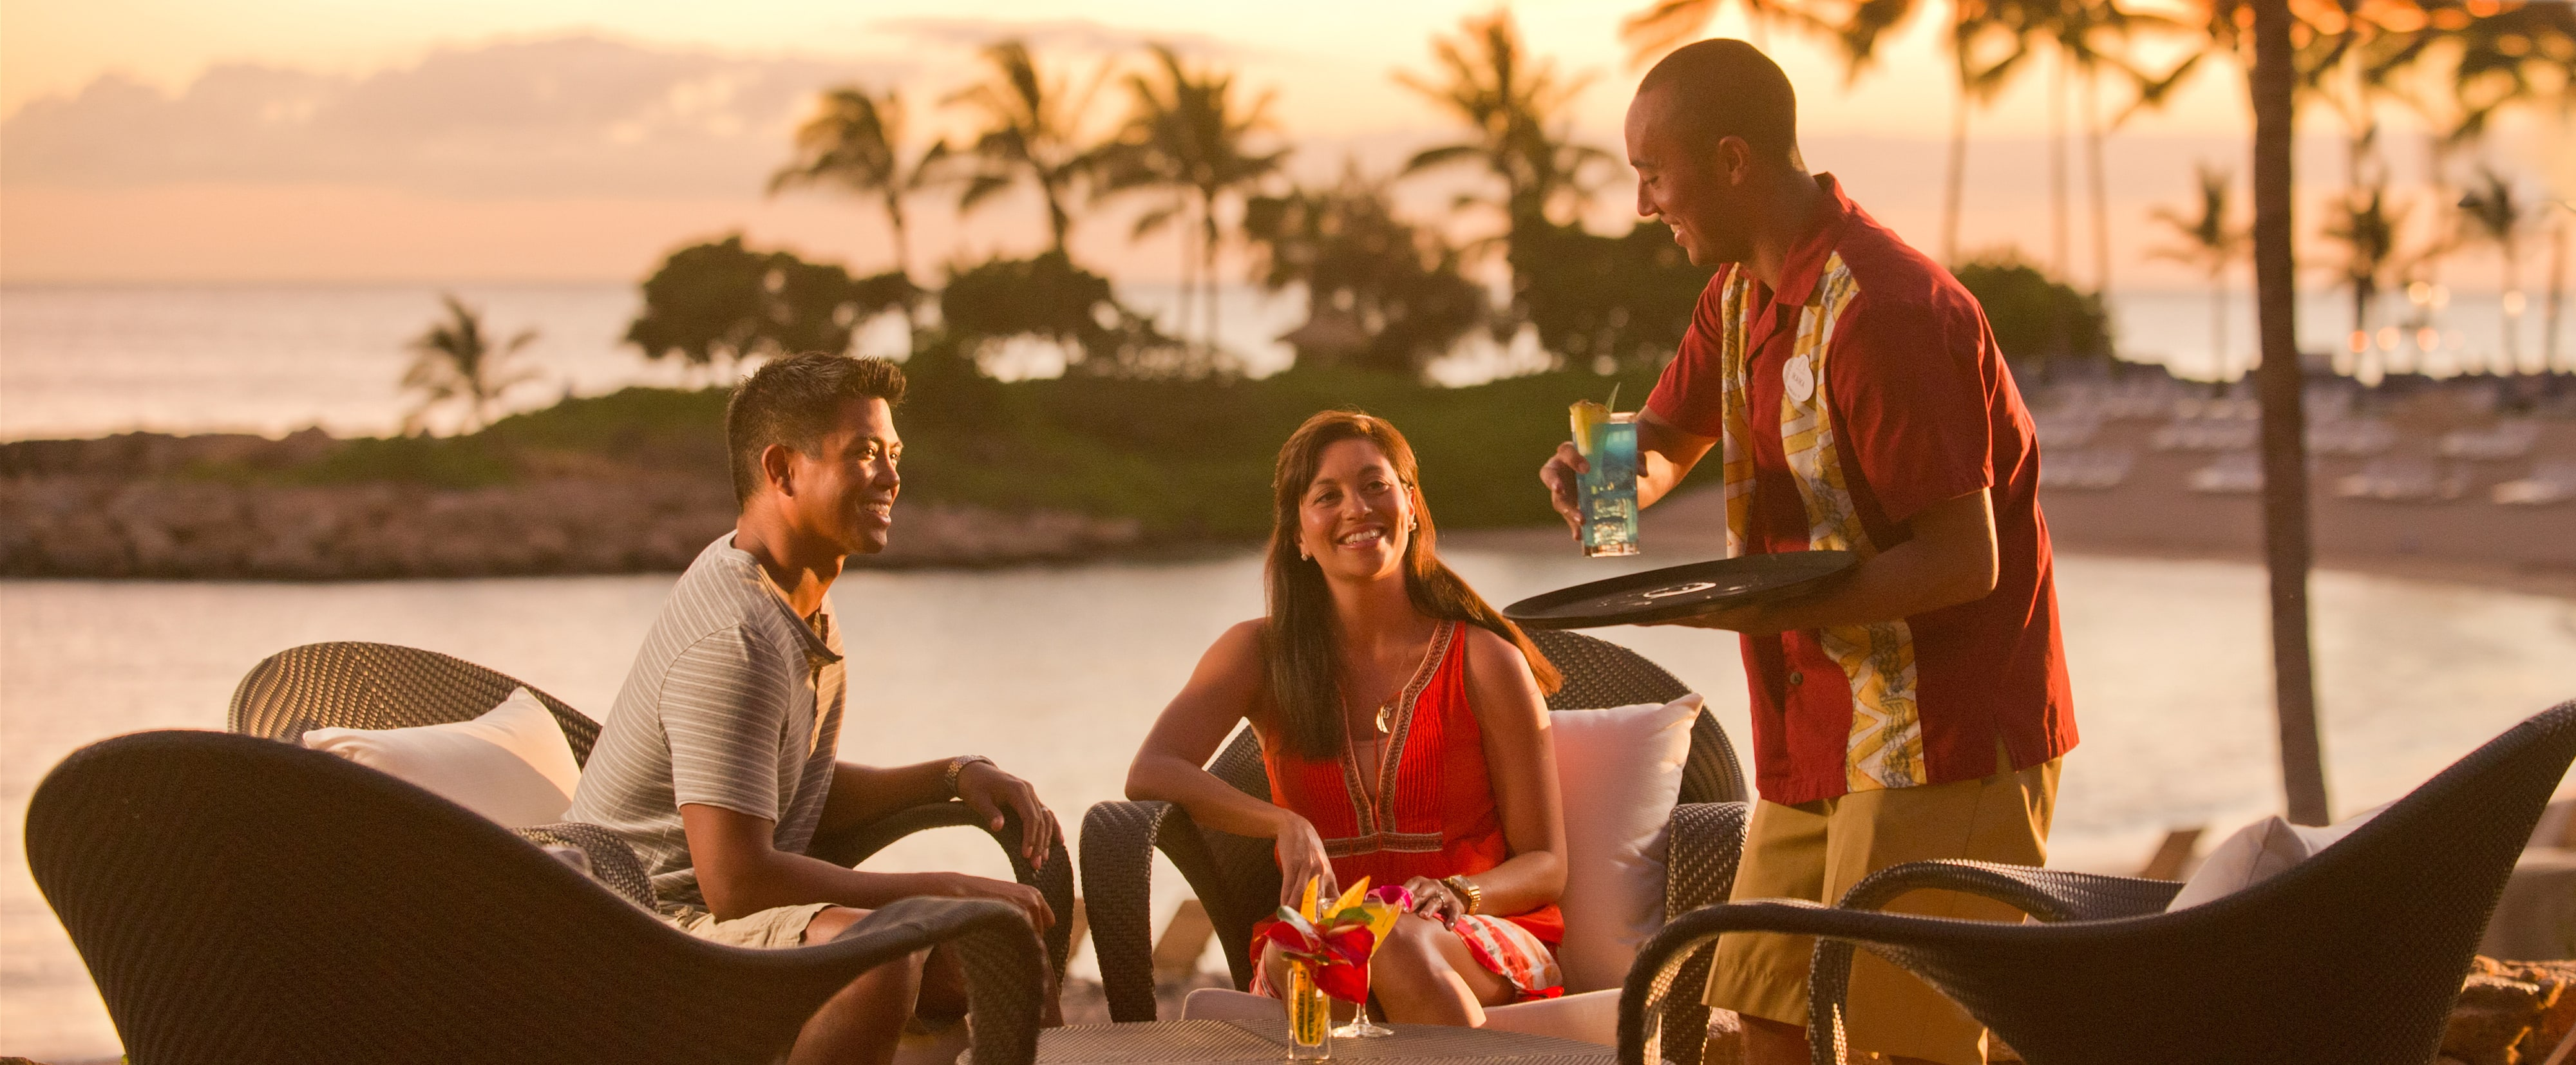 A friendly server delivers tropical cocktails to a couple at an outdoor table with an ocean view